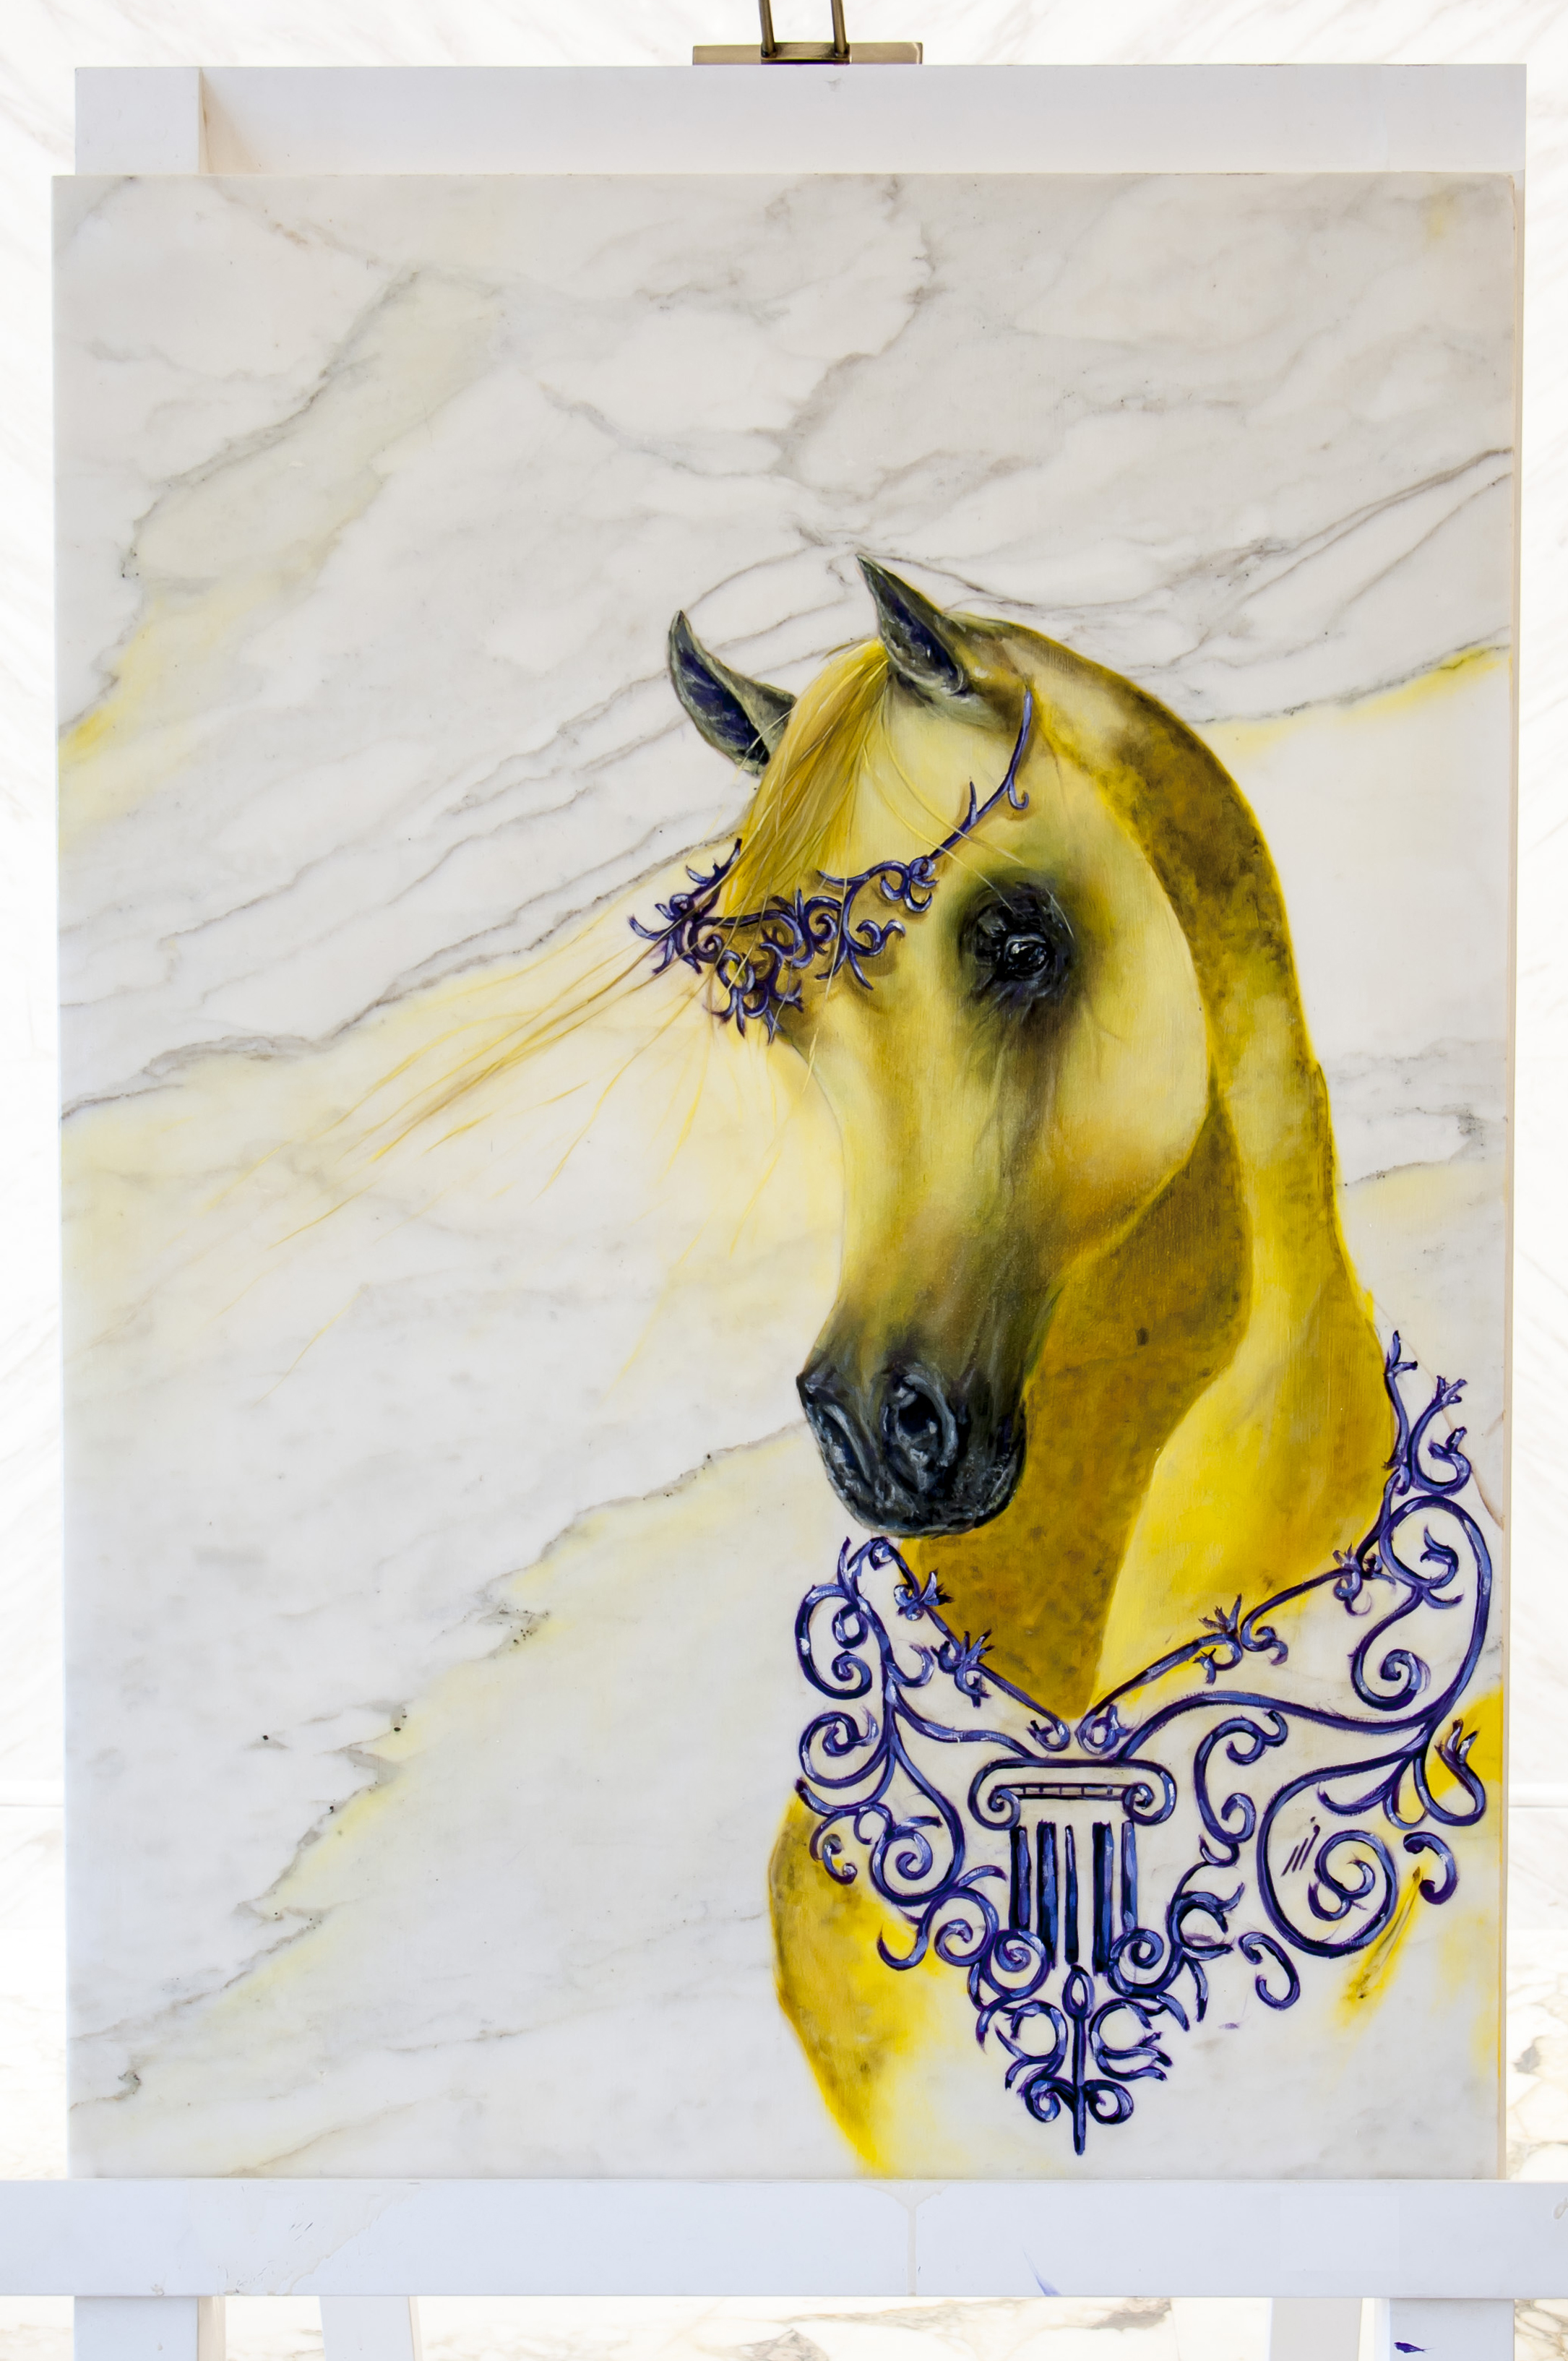 Horse artwork by  Fahad Al Maadheed - art listed for sale on Artplode